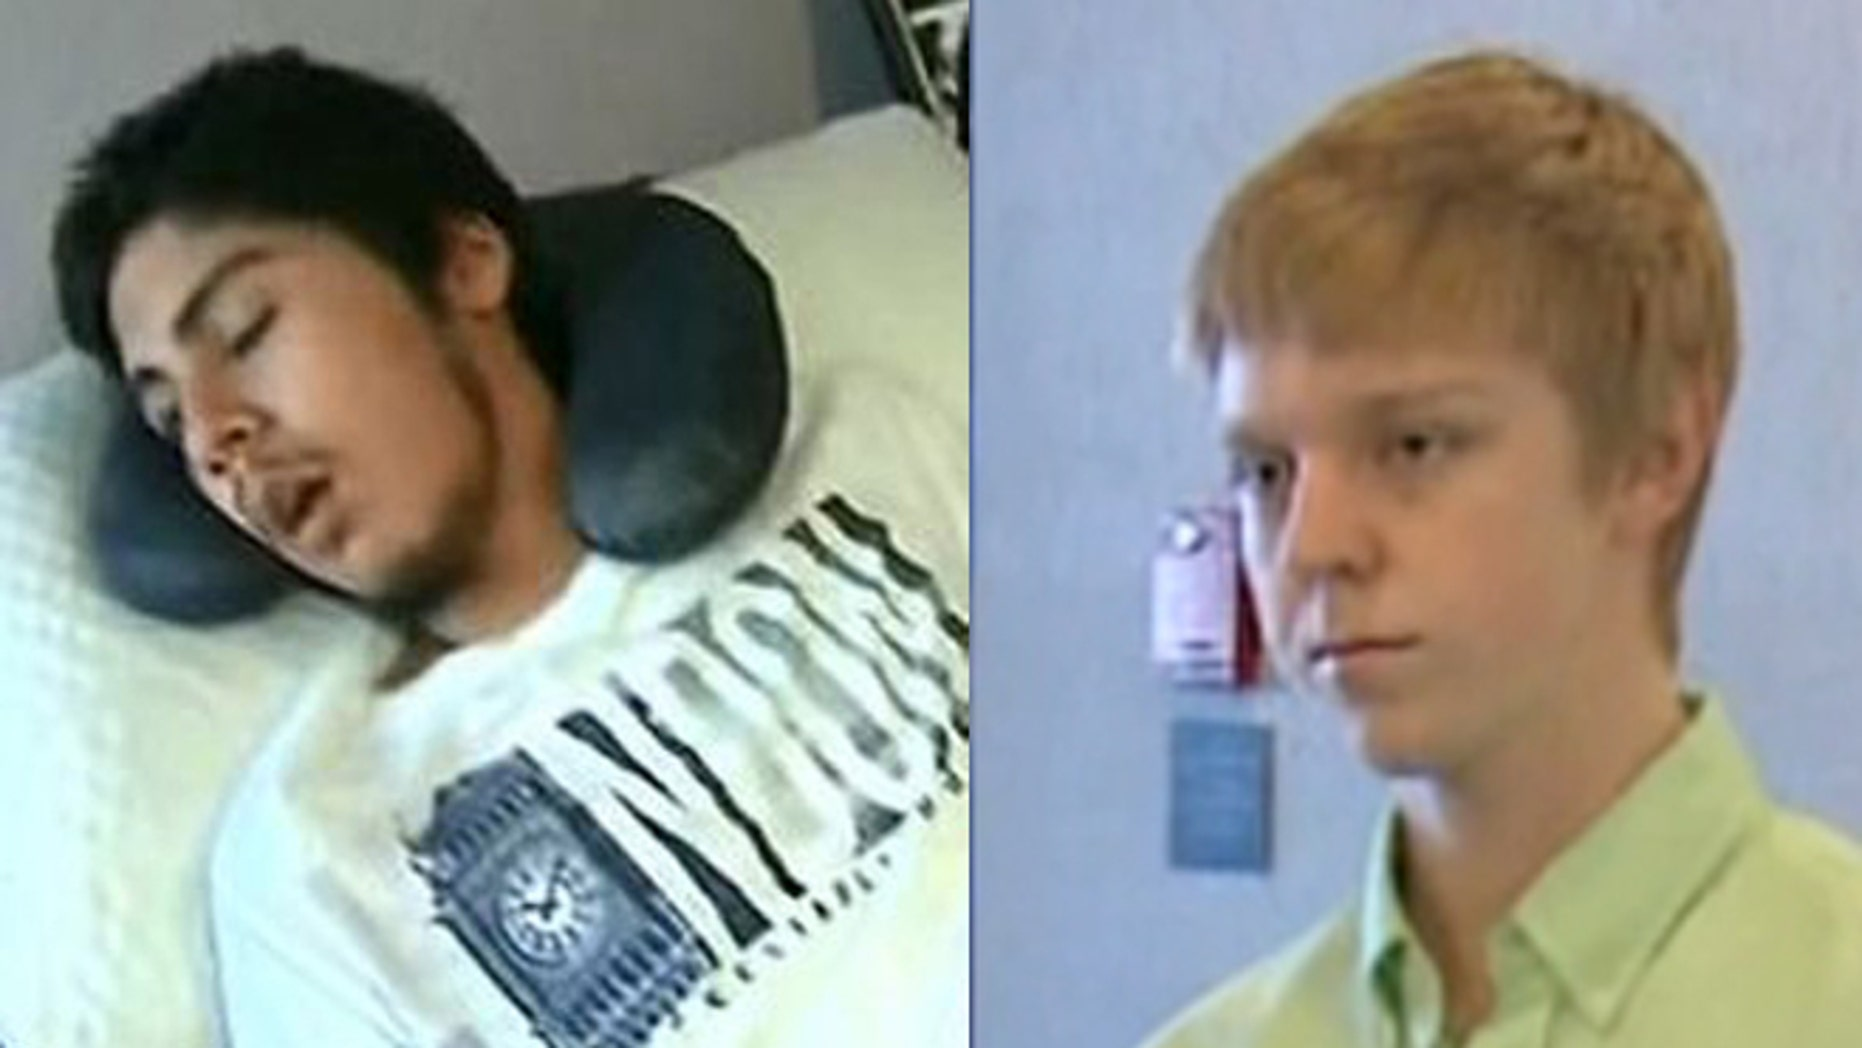 Sergio Molina, paralyzed from the neck down, and Ethan Couch, who was given 10 years probation.